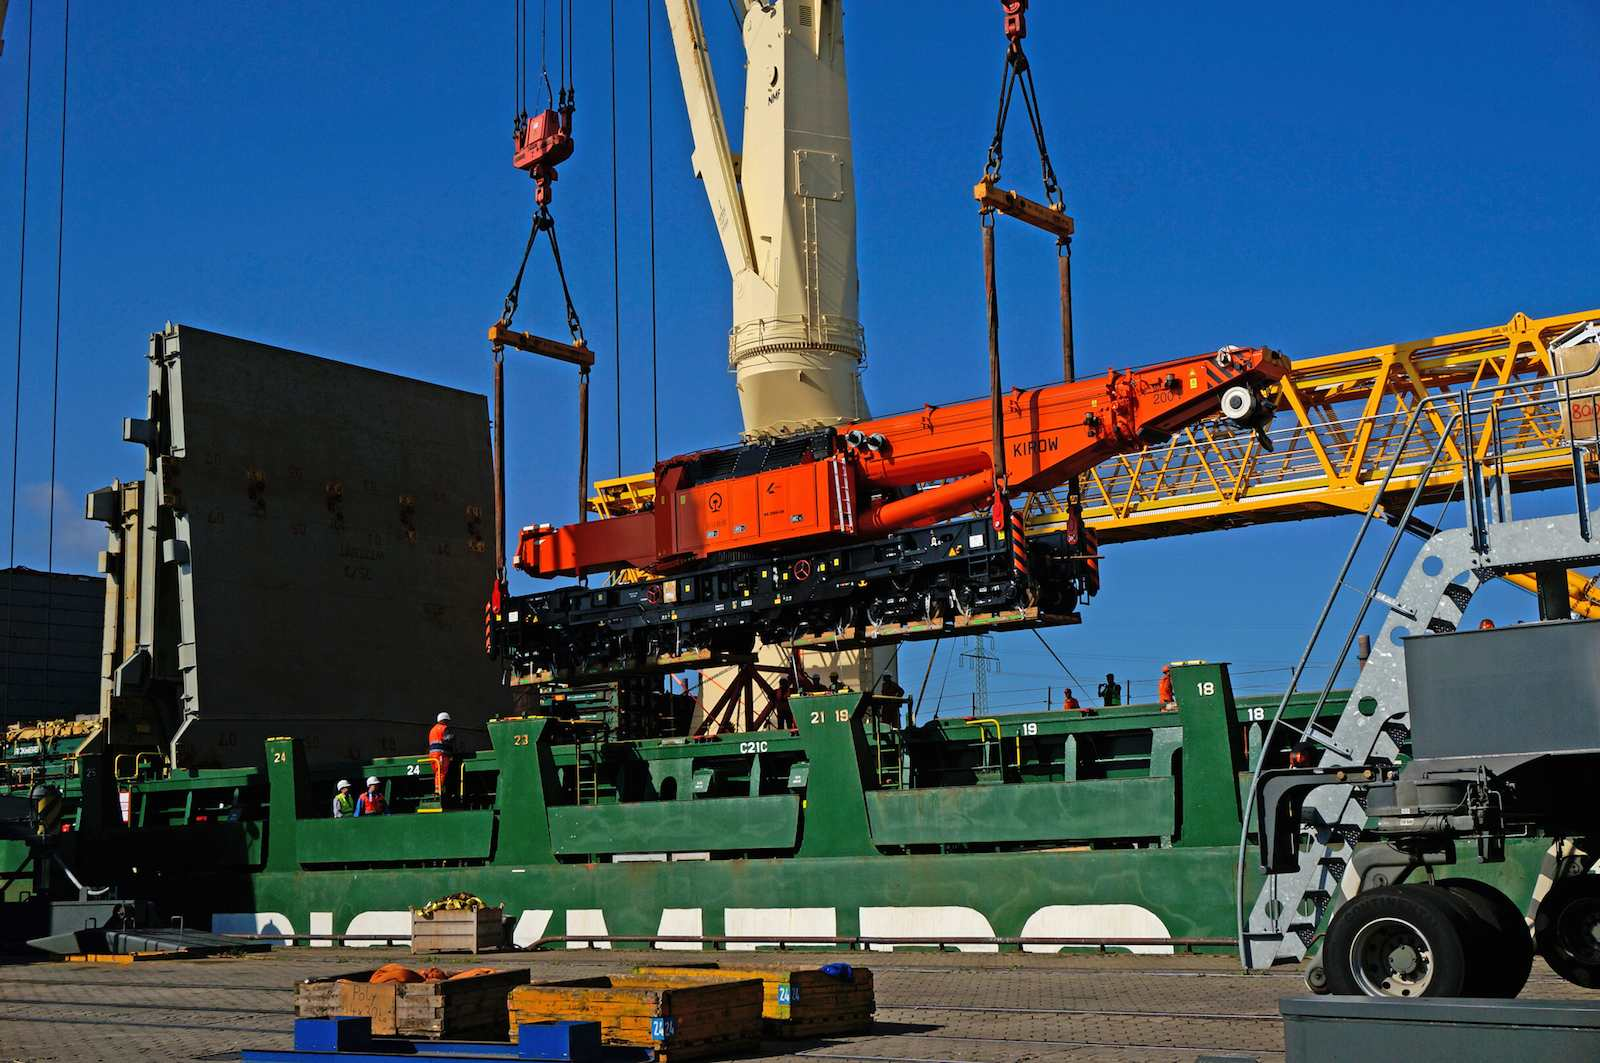 Rickmers-Linie is again the partner of choice for Kirow railway cranes to China